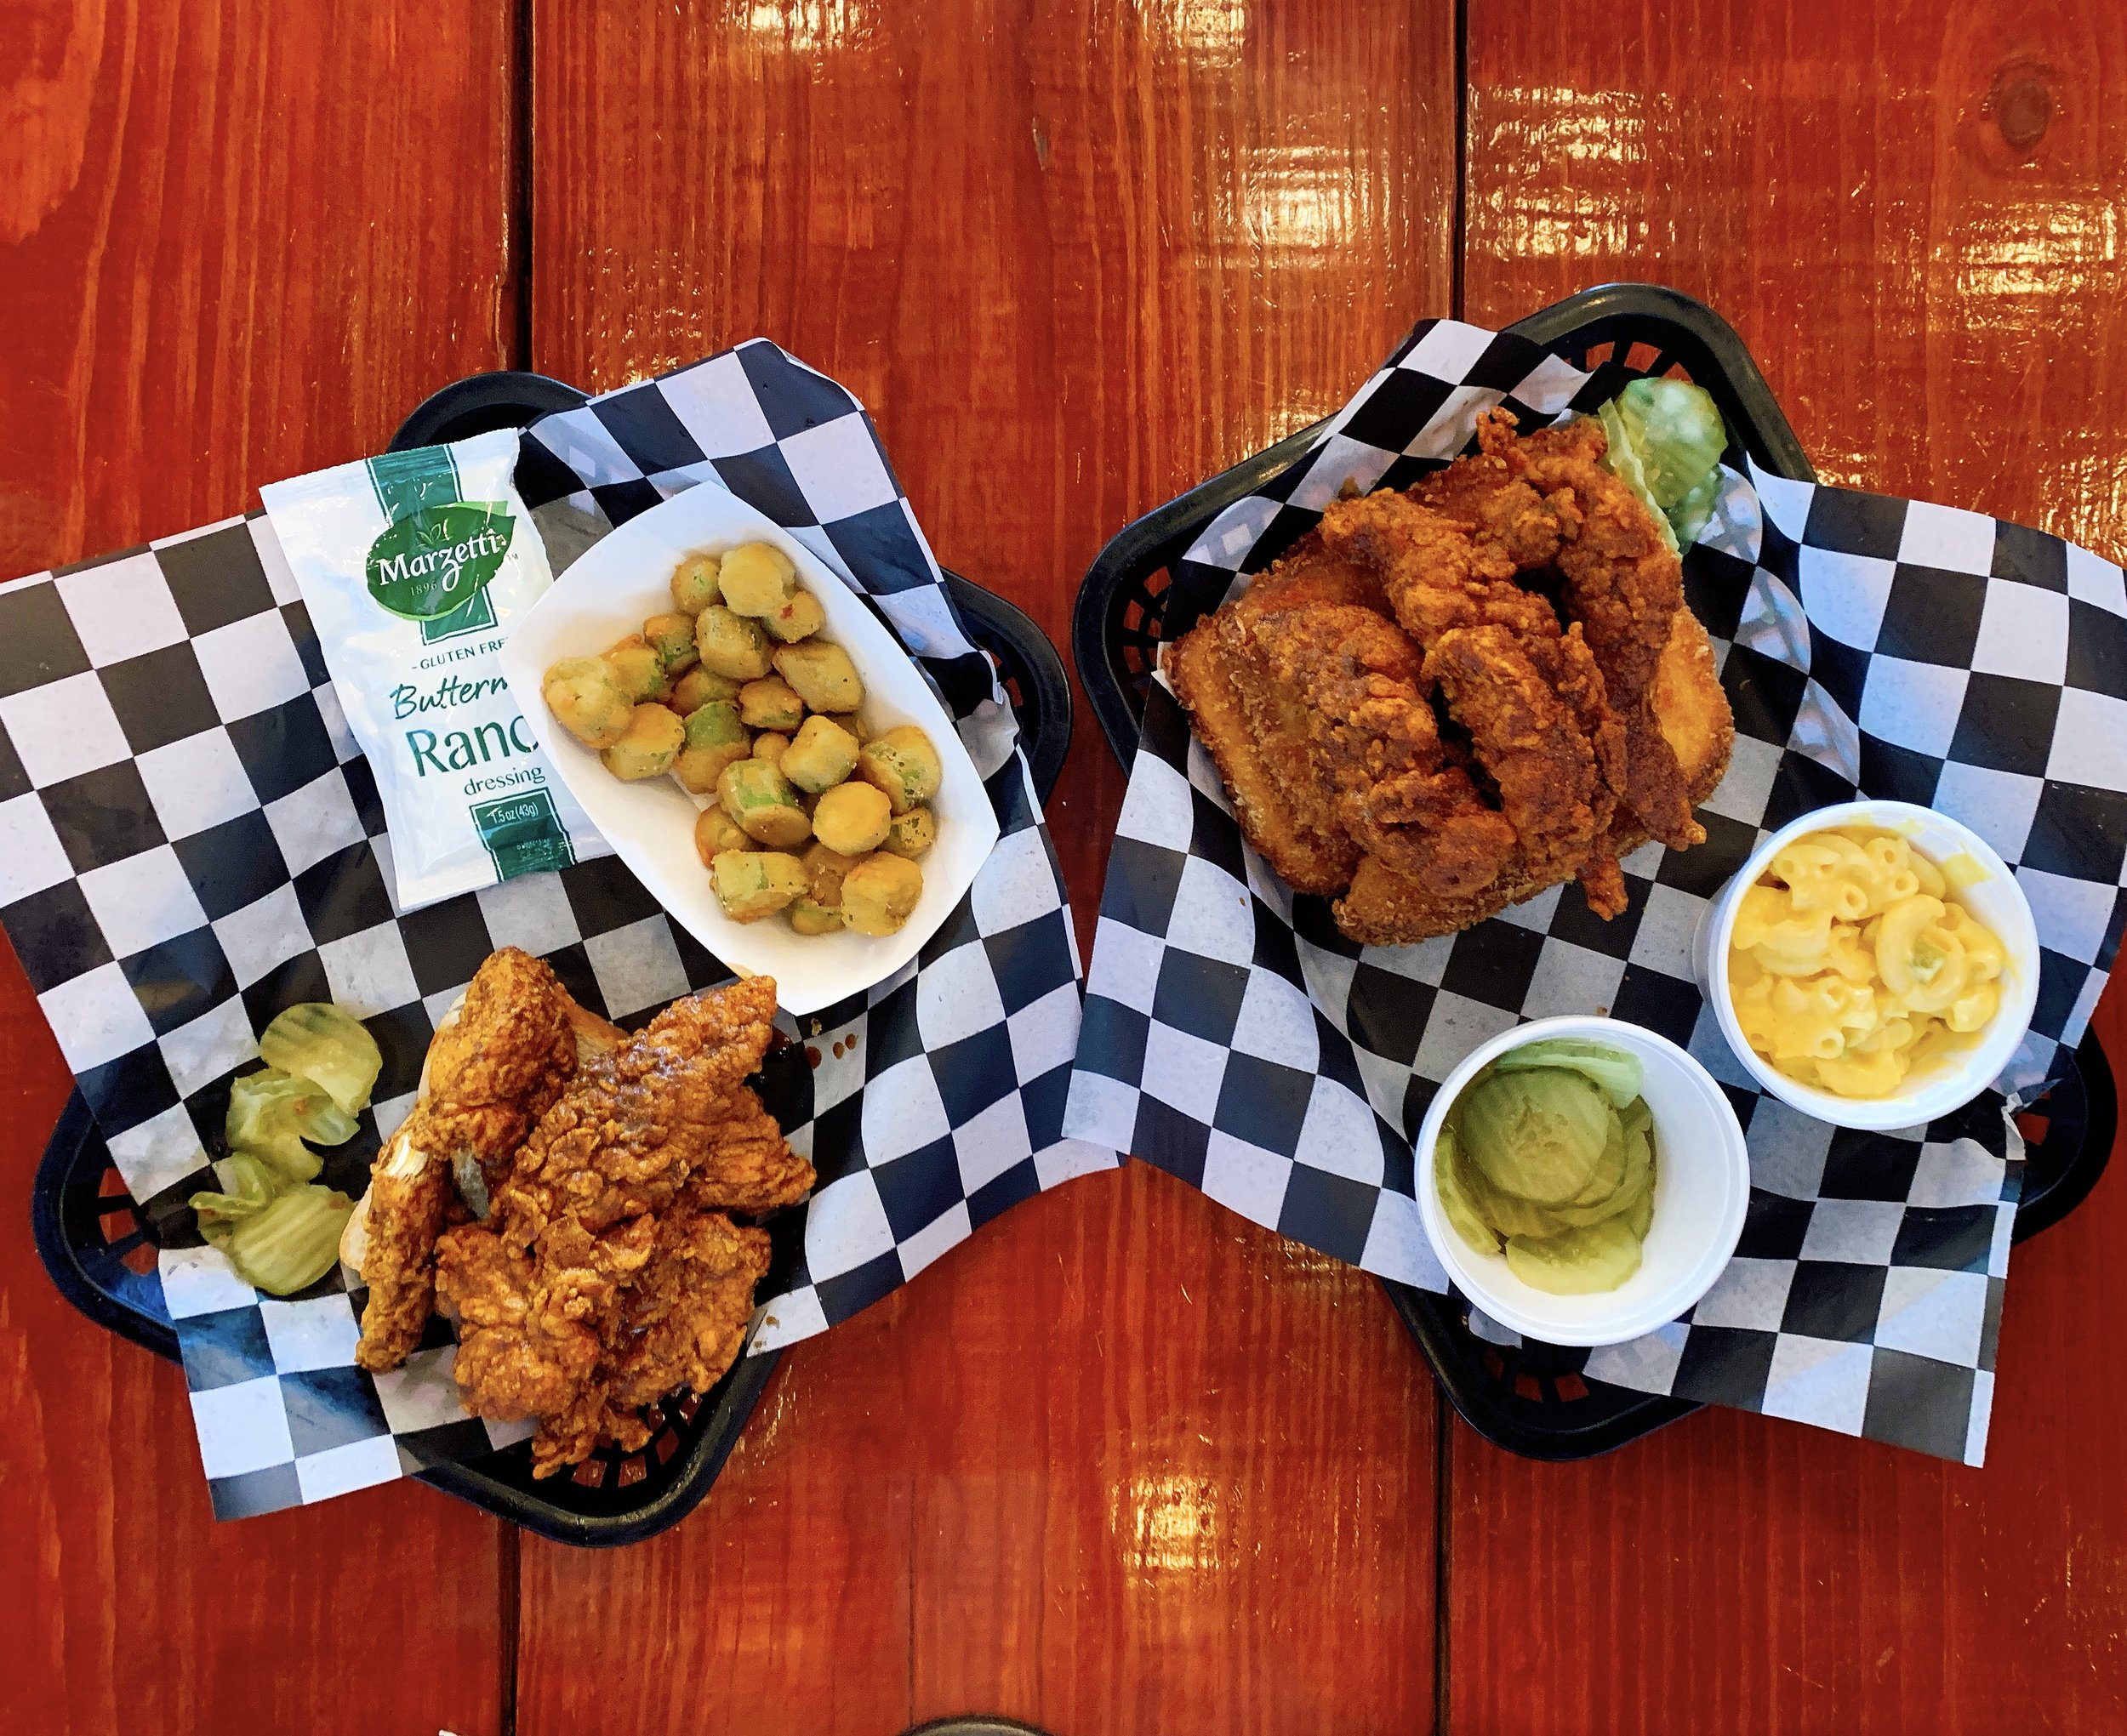 Hot Chicken Tenders + Fried Okra (Left) And Tender Royale + Green Chile Mac N Cheese (Right)